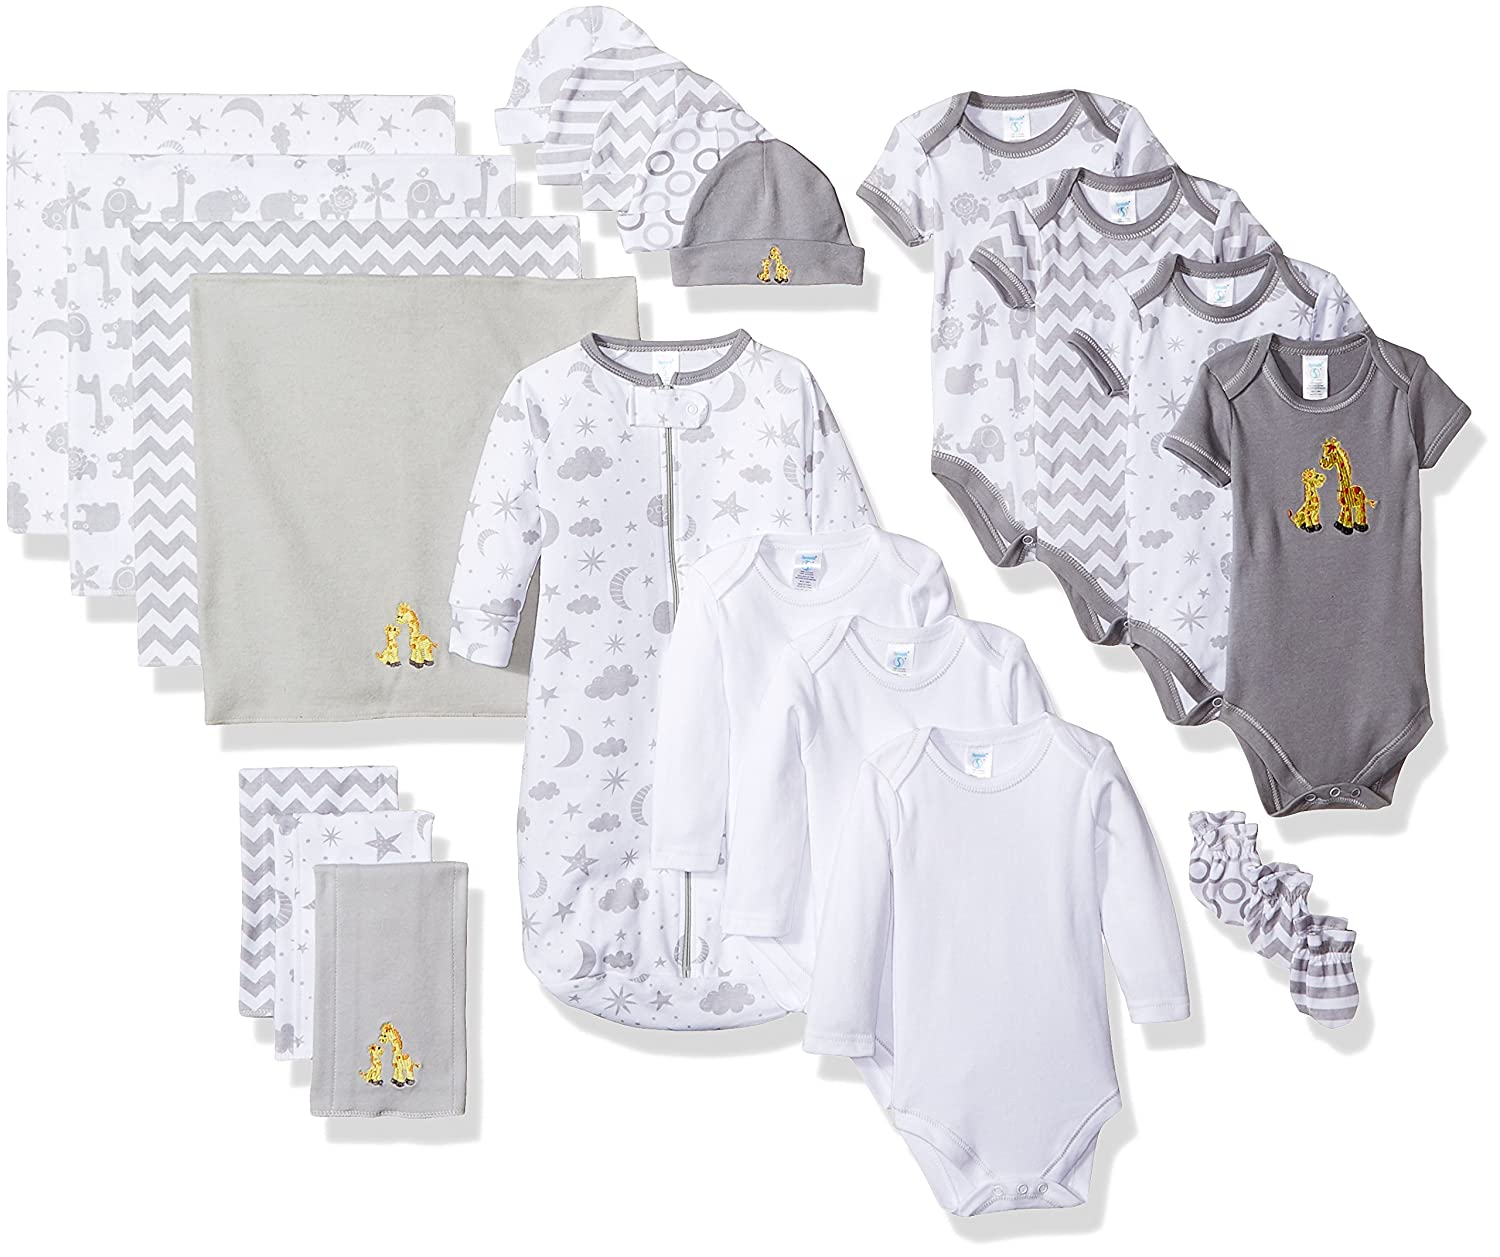 Spasik 23 Piece Baby Essential Layette Gift Set